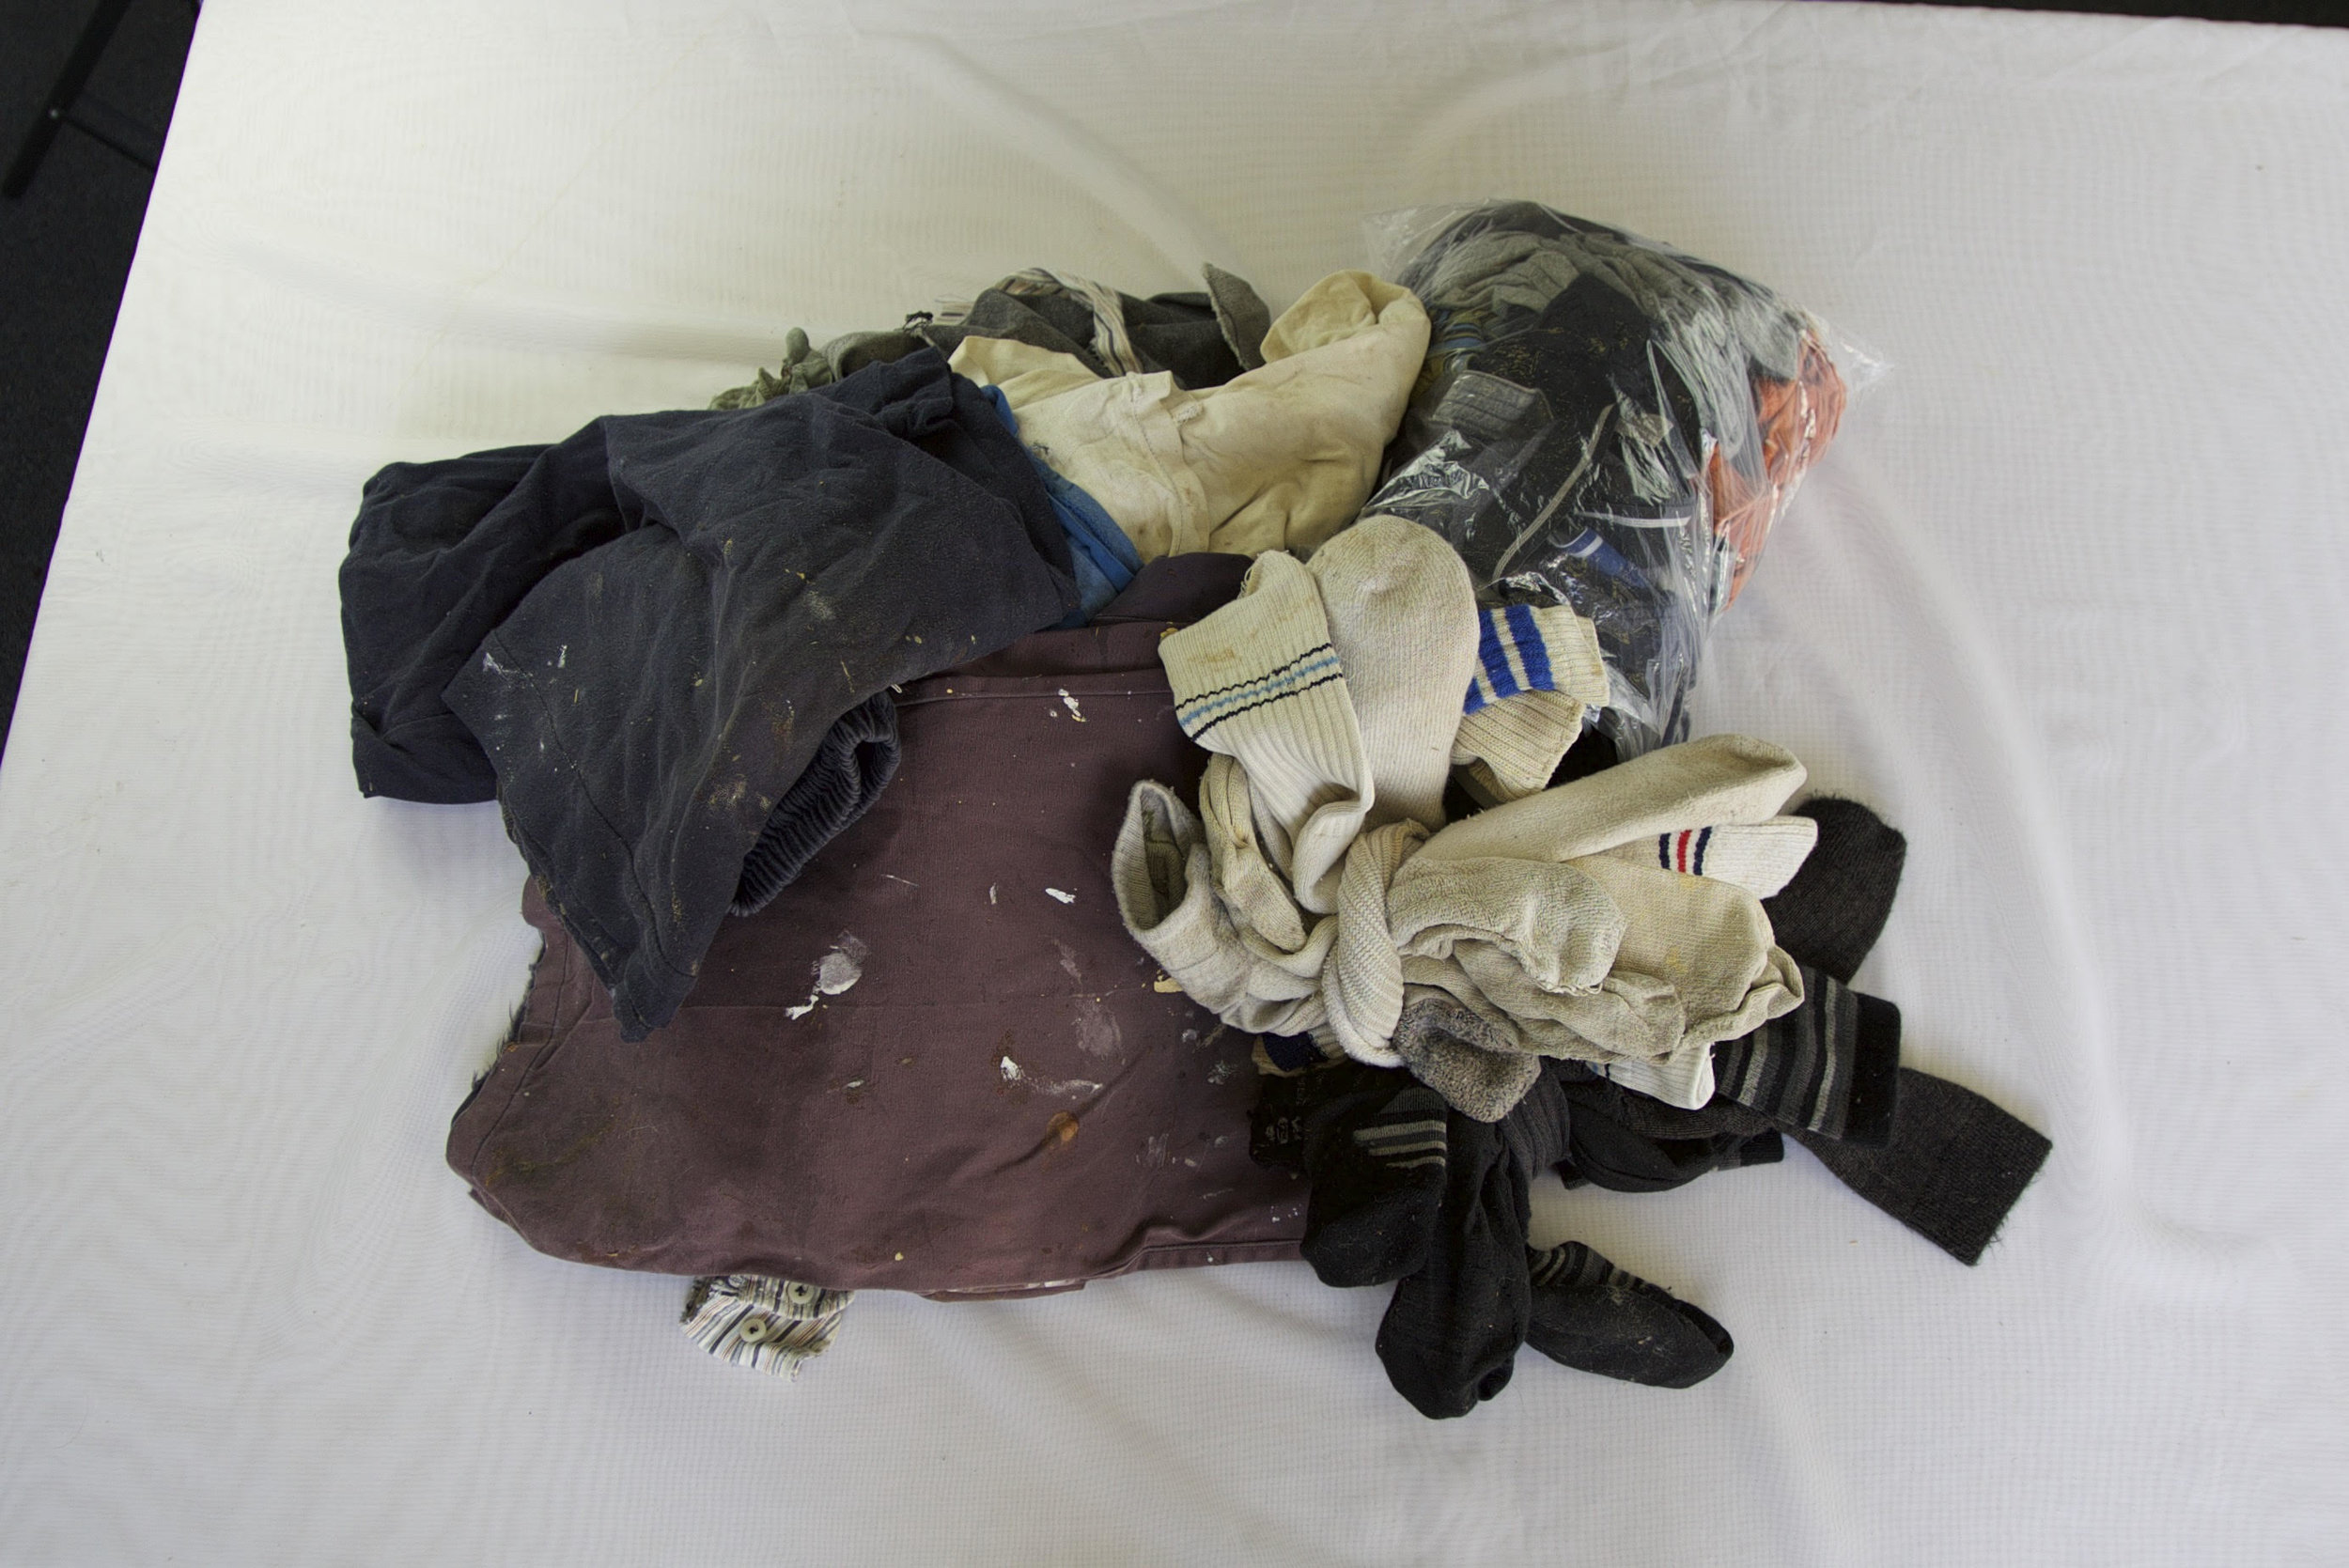 Five years worth of waste clothing: not acceptable at reuse shops or for rags..